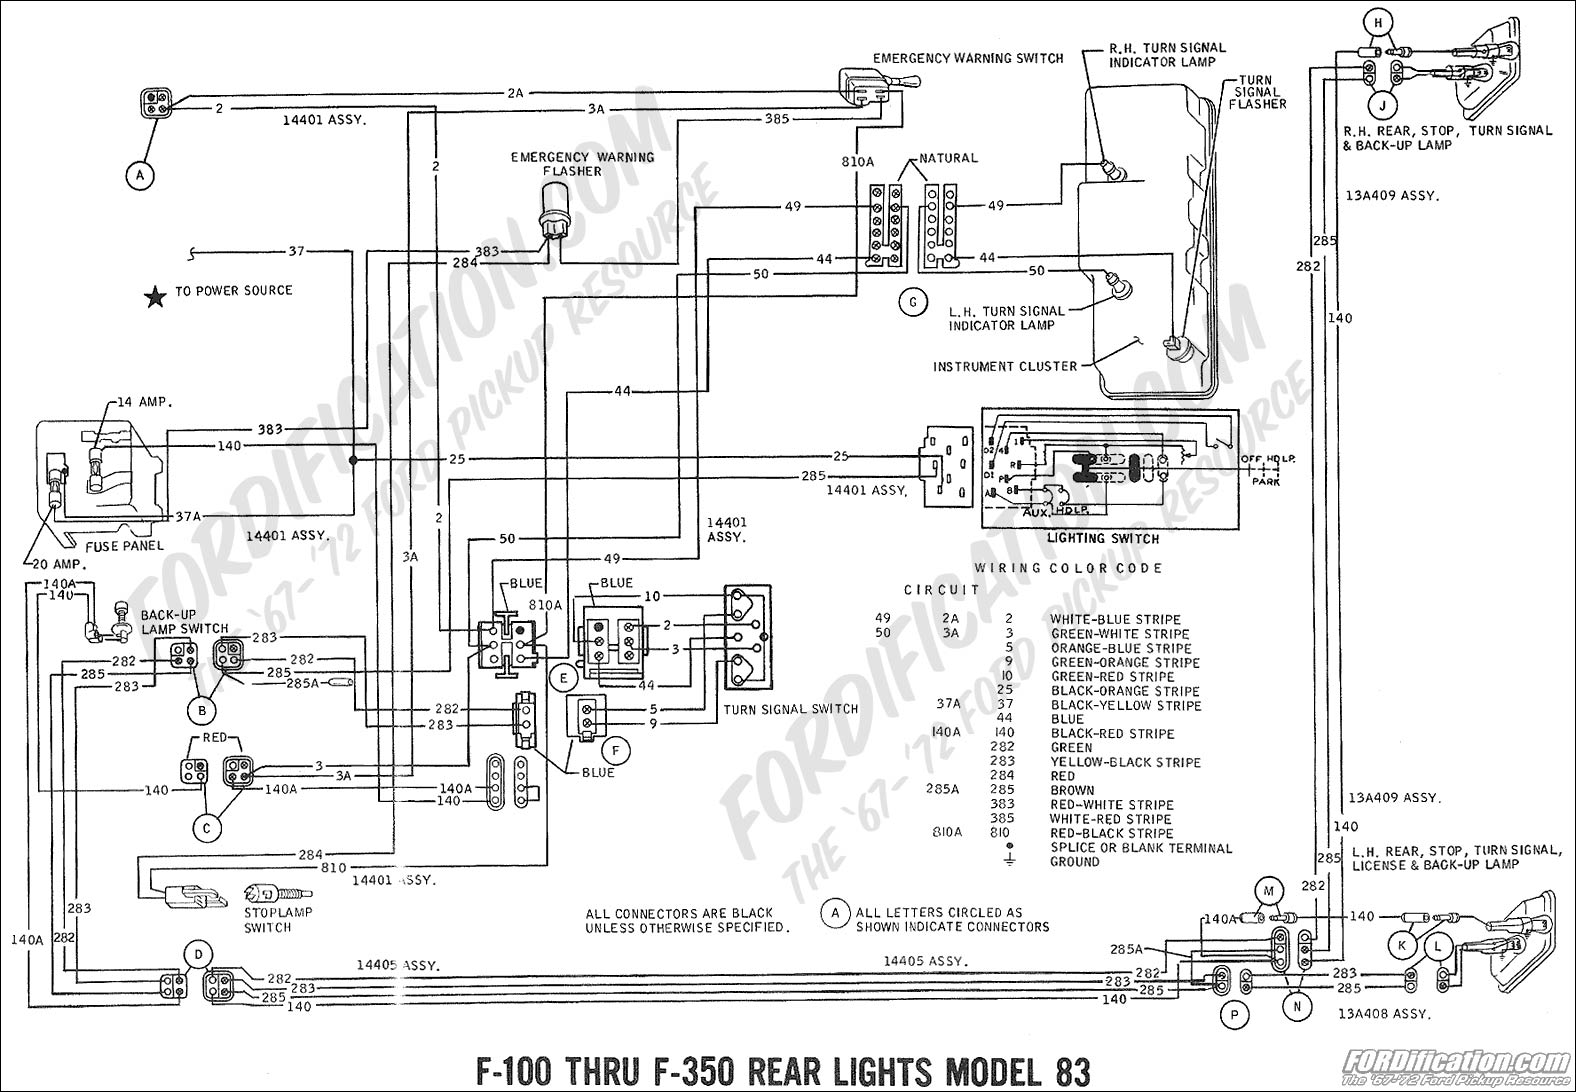 ford truck technical drawings and schematics section h wiring rh fordification com 1966 F -100 Wiring Diagram 1968 ford f250 wiring diagram